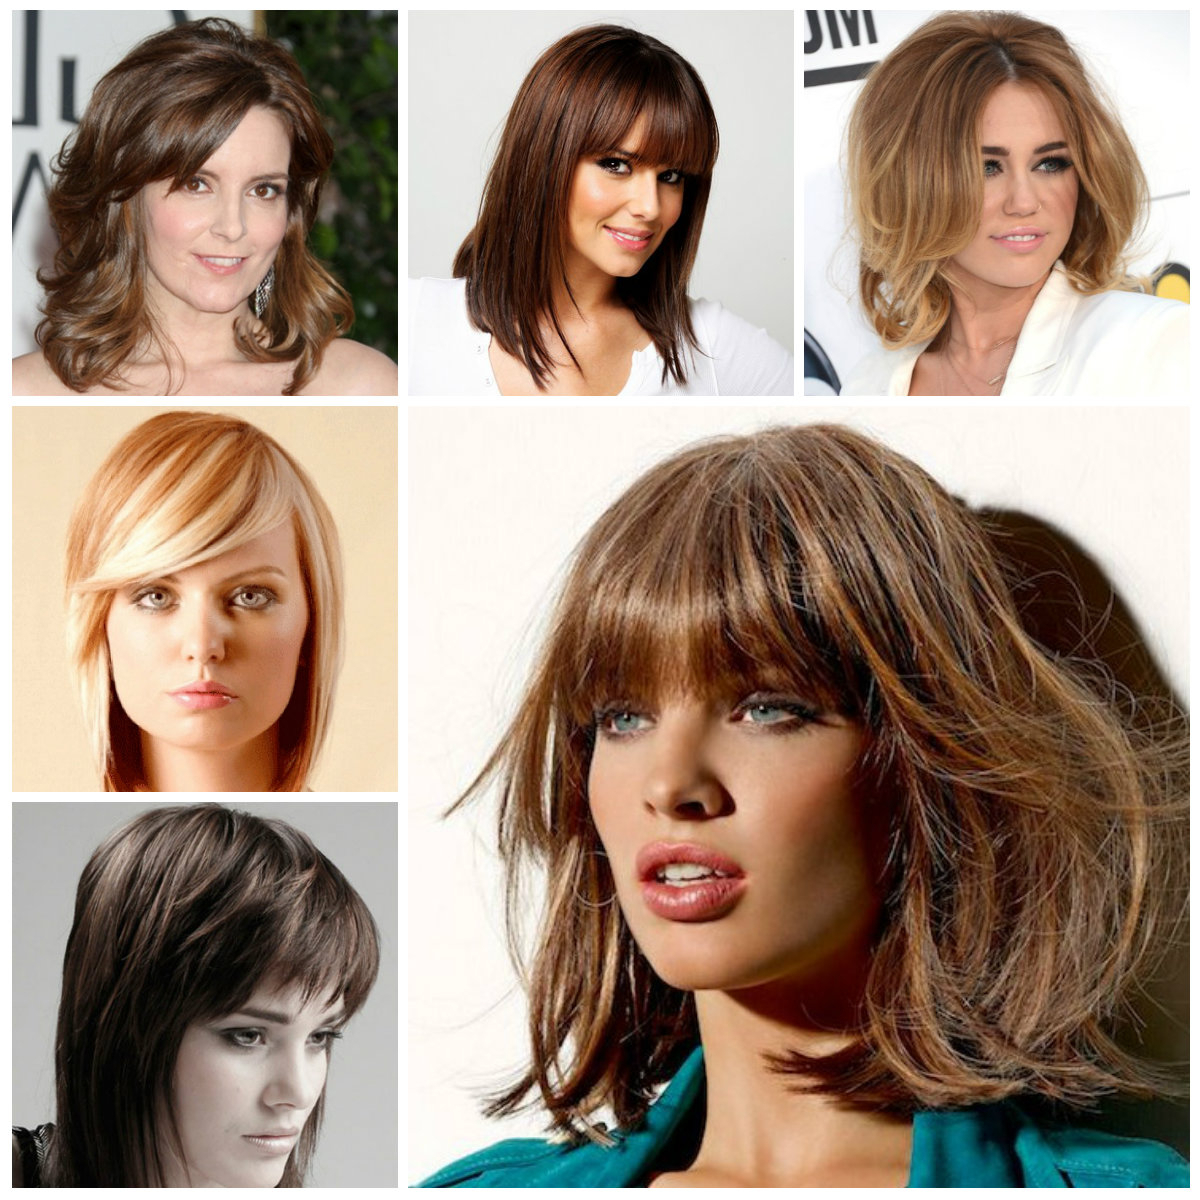 2017 Ladies Medium Hairstyles With Fringe With 2019 Bang Hairstyles For Medium Hair (View 15 of 20)